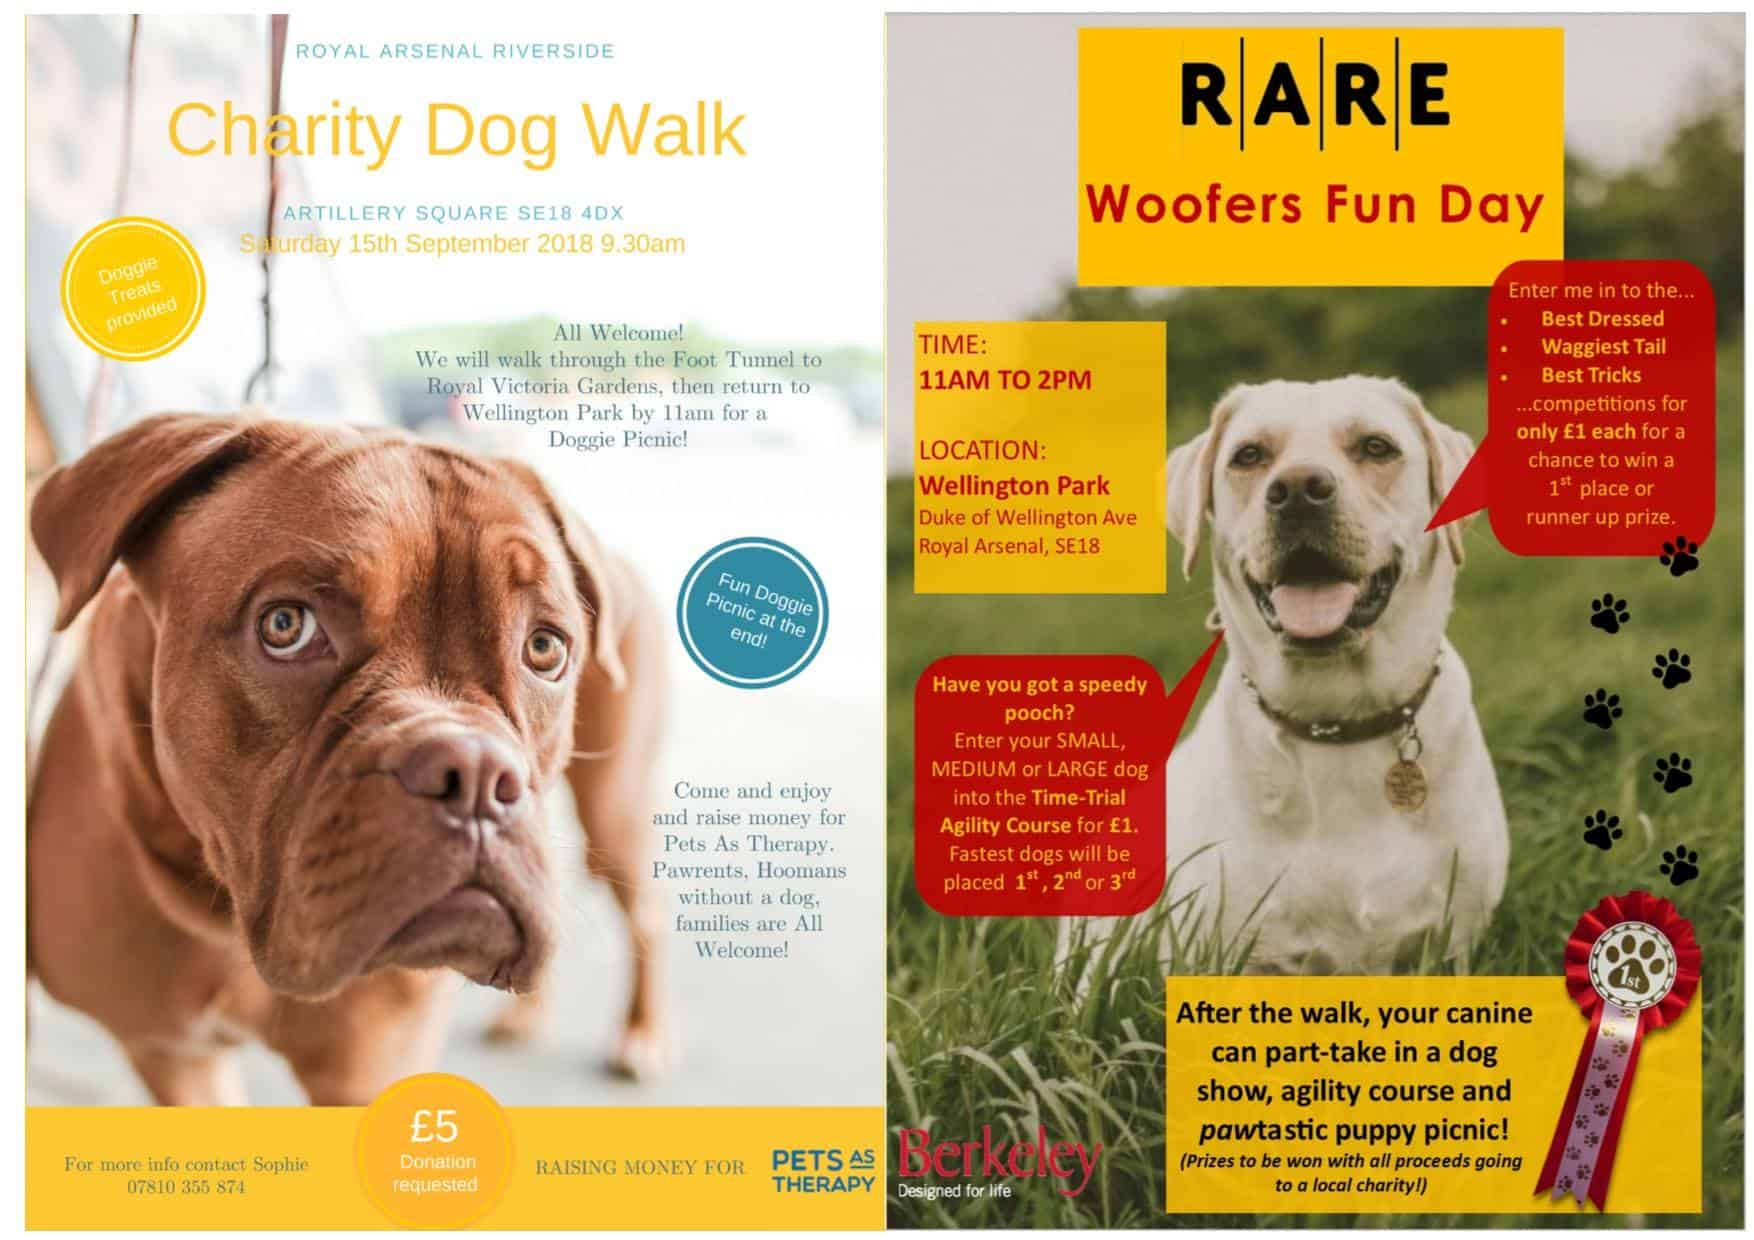 Charity Dog Walk For Pets As Therapy and RARE Woofers Fun Day